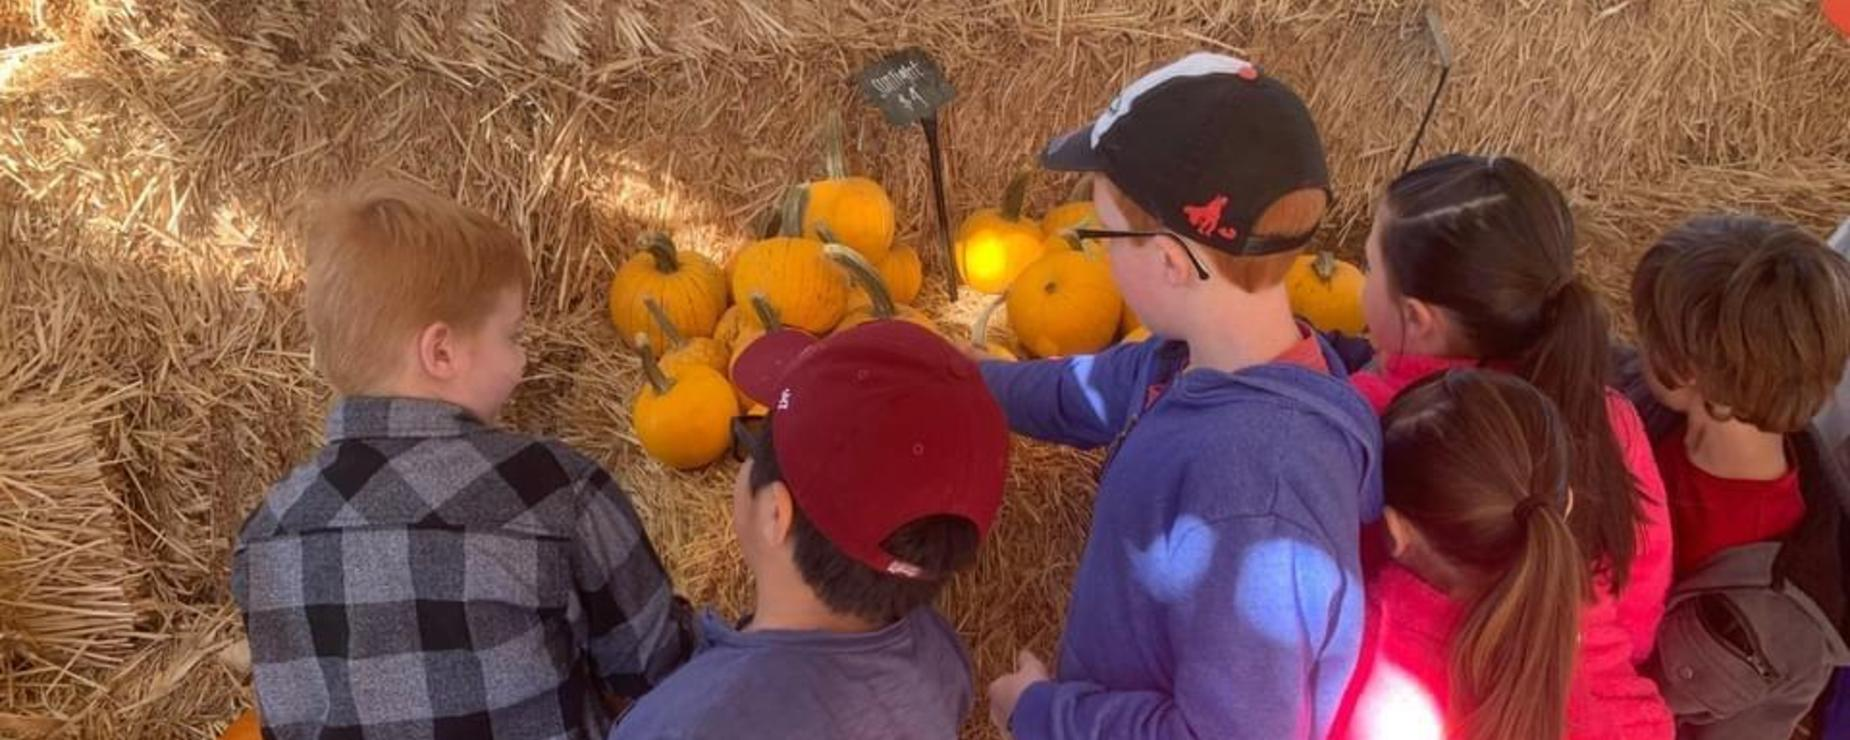 Students checking out pumpkins